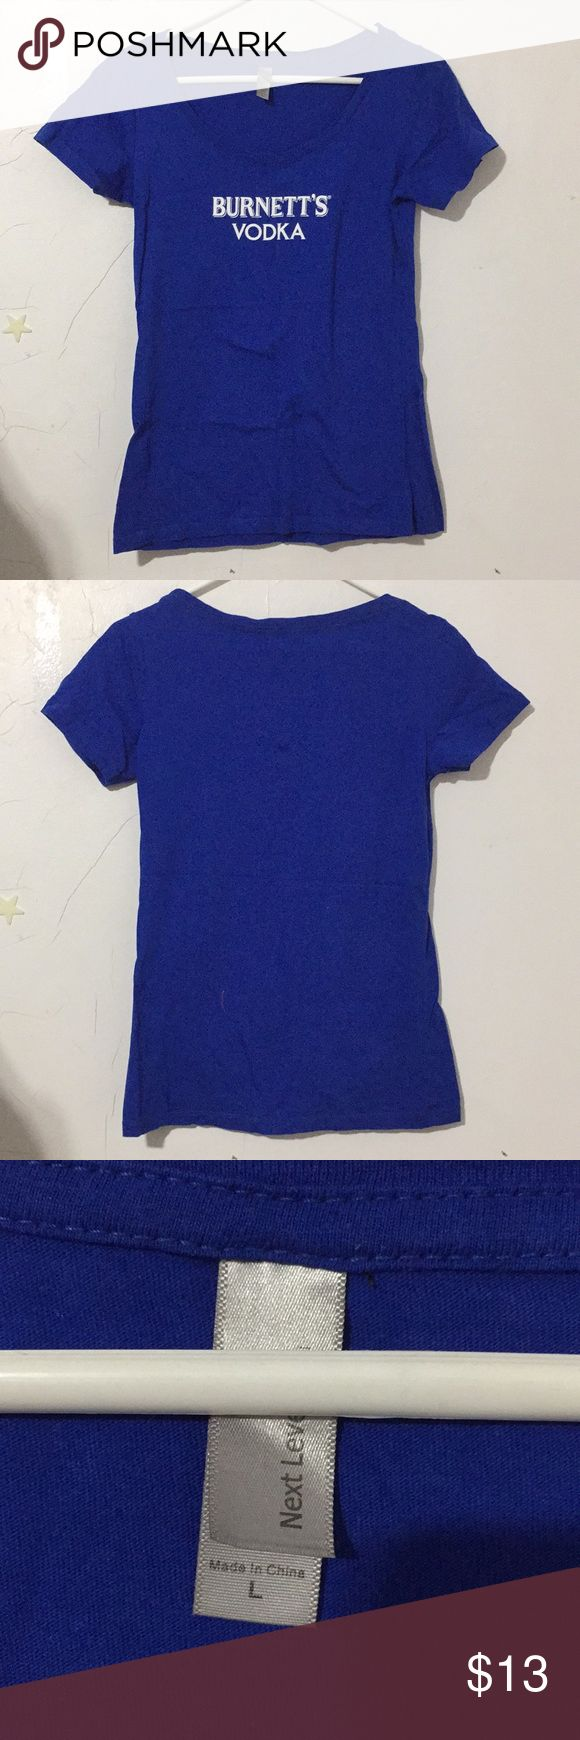 NEW Burnetts Vodka Blue Scoop Neck Tee Sz L Womens NEW Burnett's Vodka Blue Scoop Neck Tee Sz L Womens Urban Outfitters Tops Tees - Short Sleeve